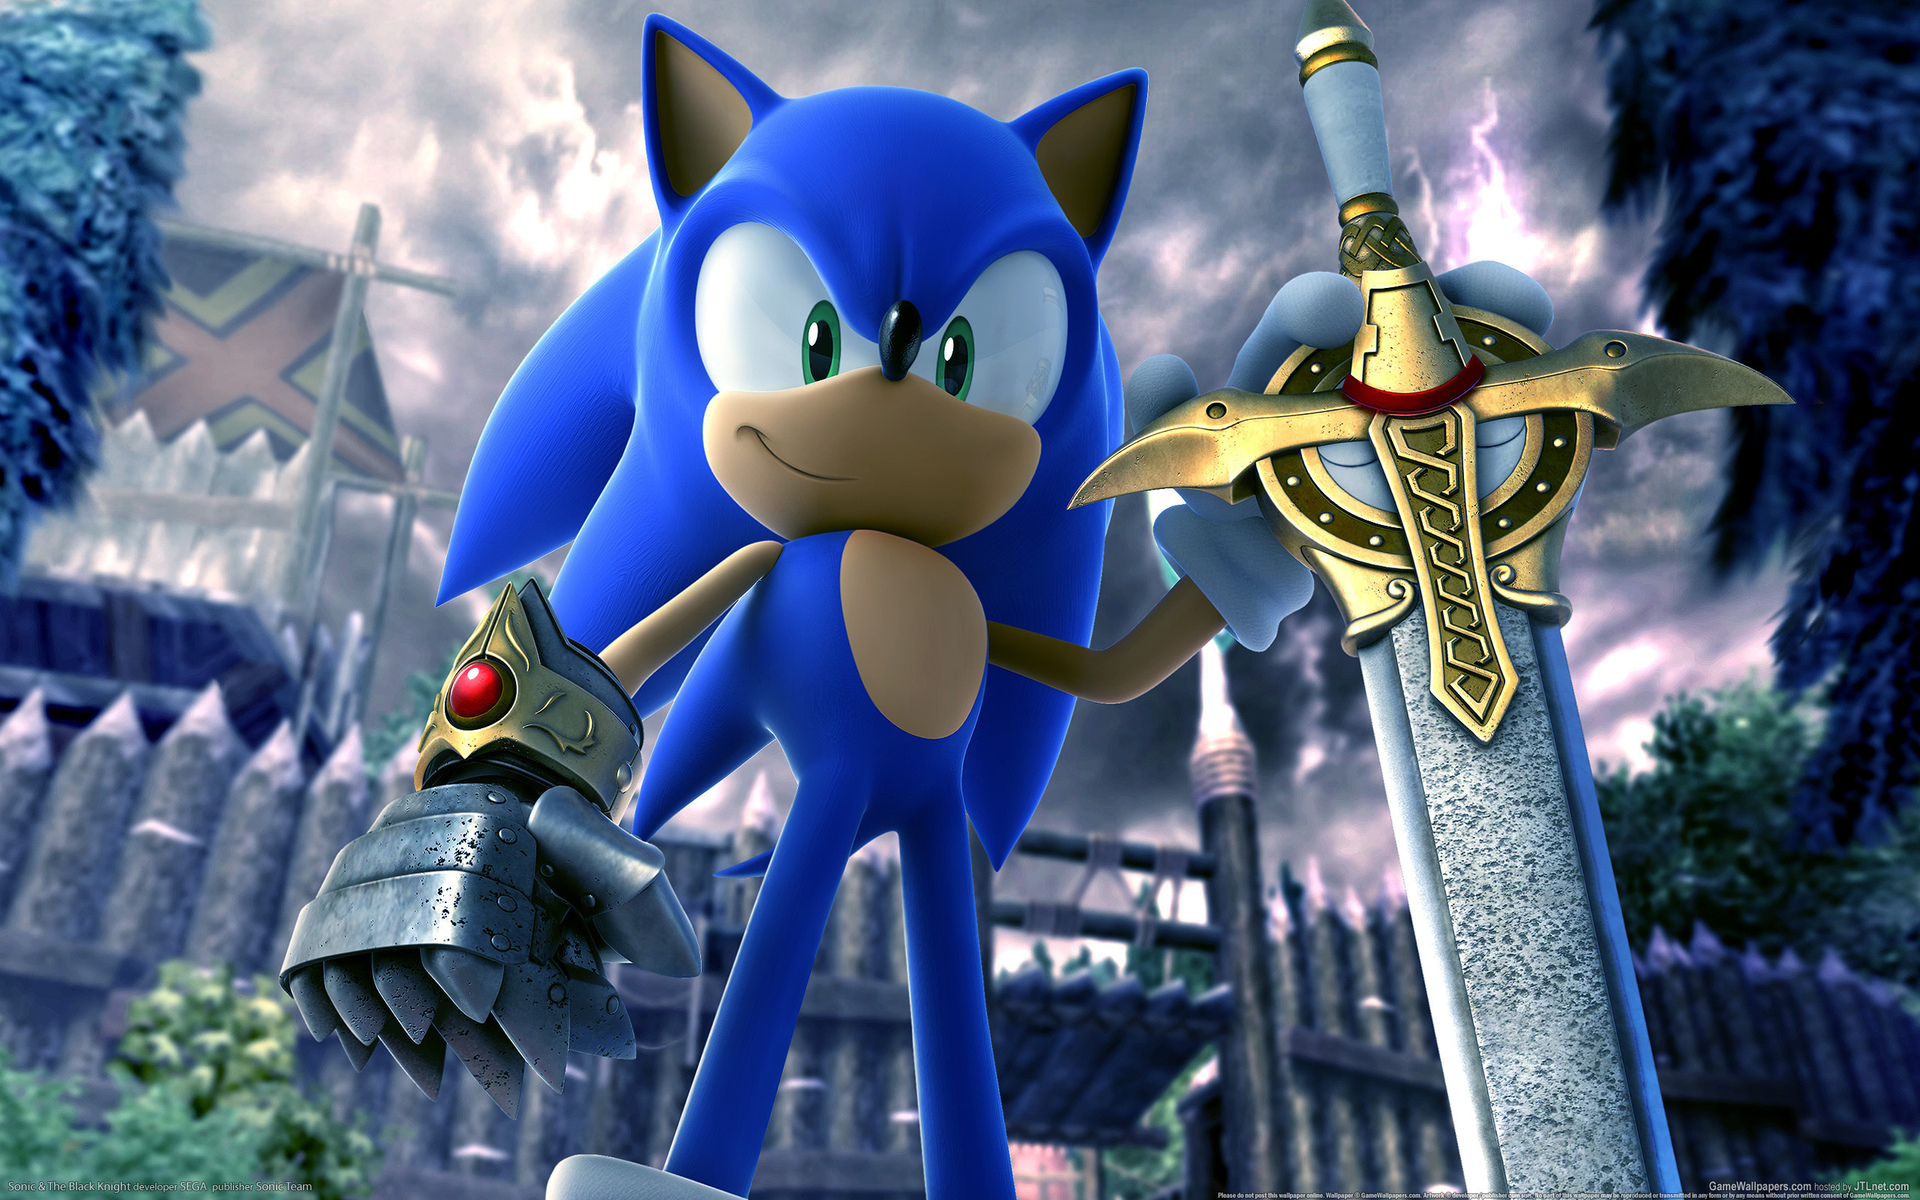 ёжик, соник, игры, меч, sword, sonic and the black knight, beautiful game wallpapers, sega, hero, обои